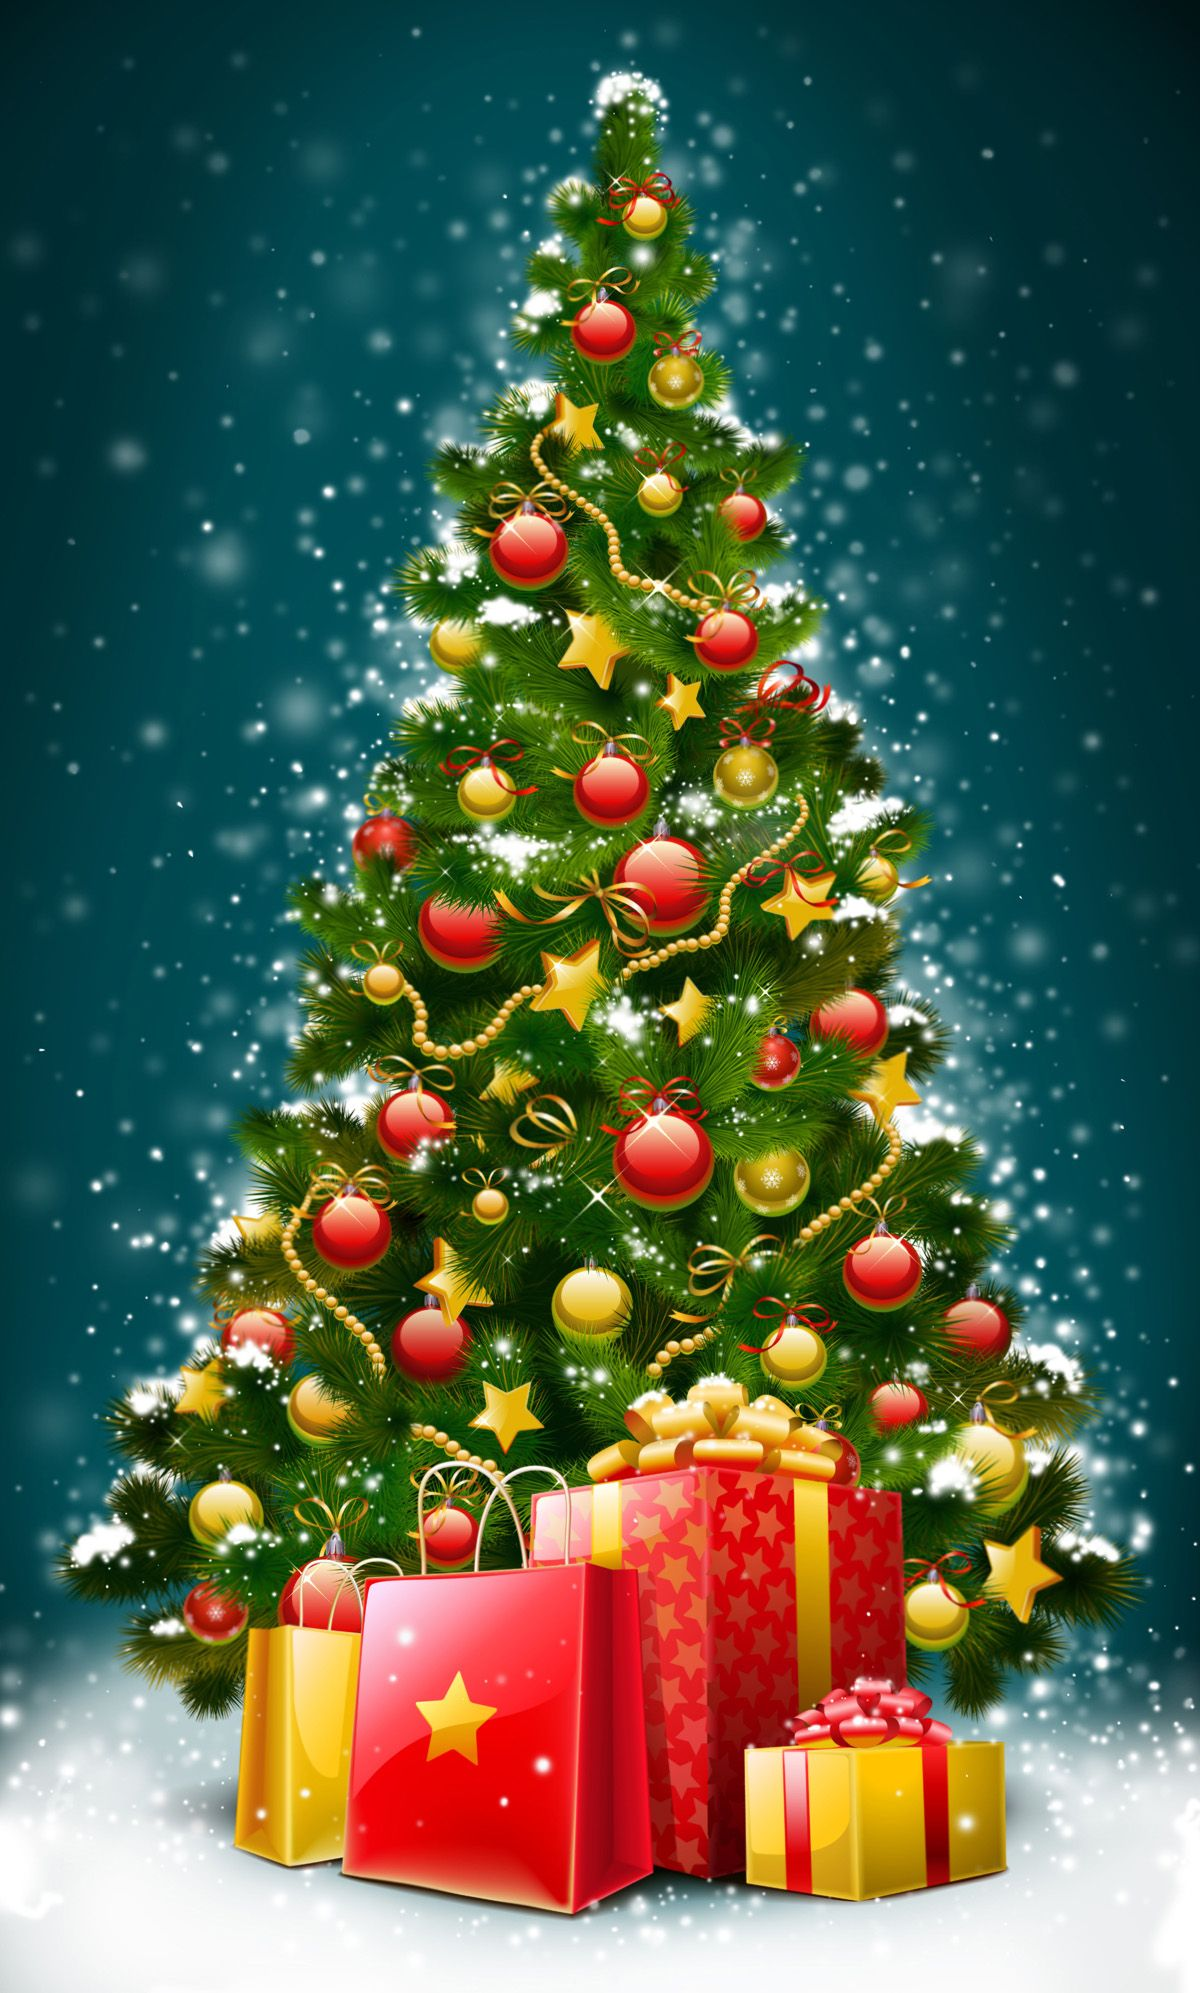 Merry Christmas | Christmas: My Favorite Magic Time | Pinterest ...